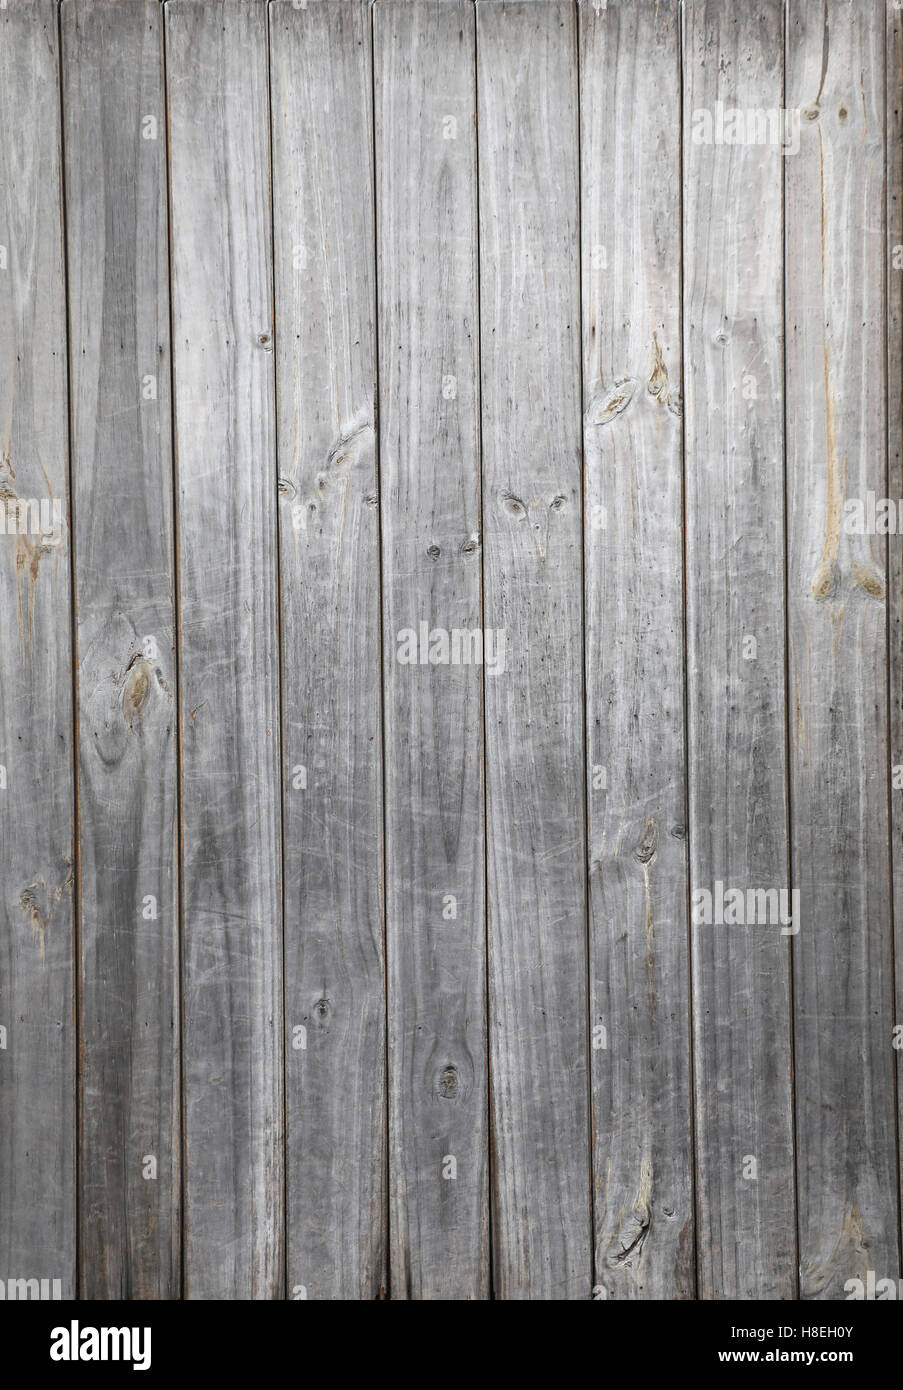 White Wood Texture Background,walls Of The Interior For Design.